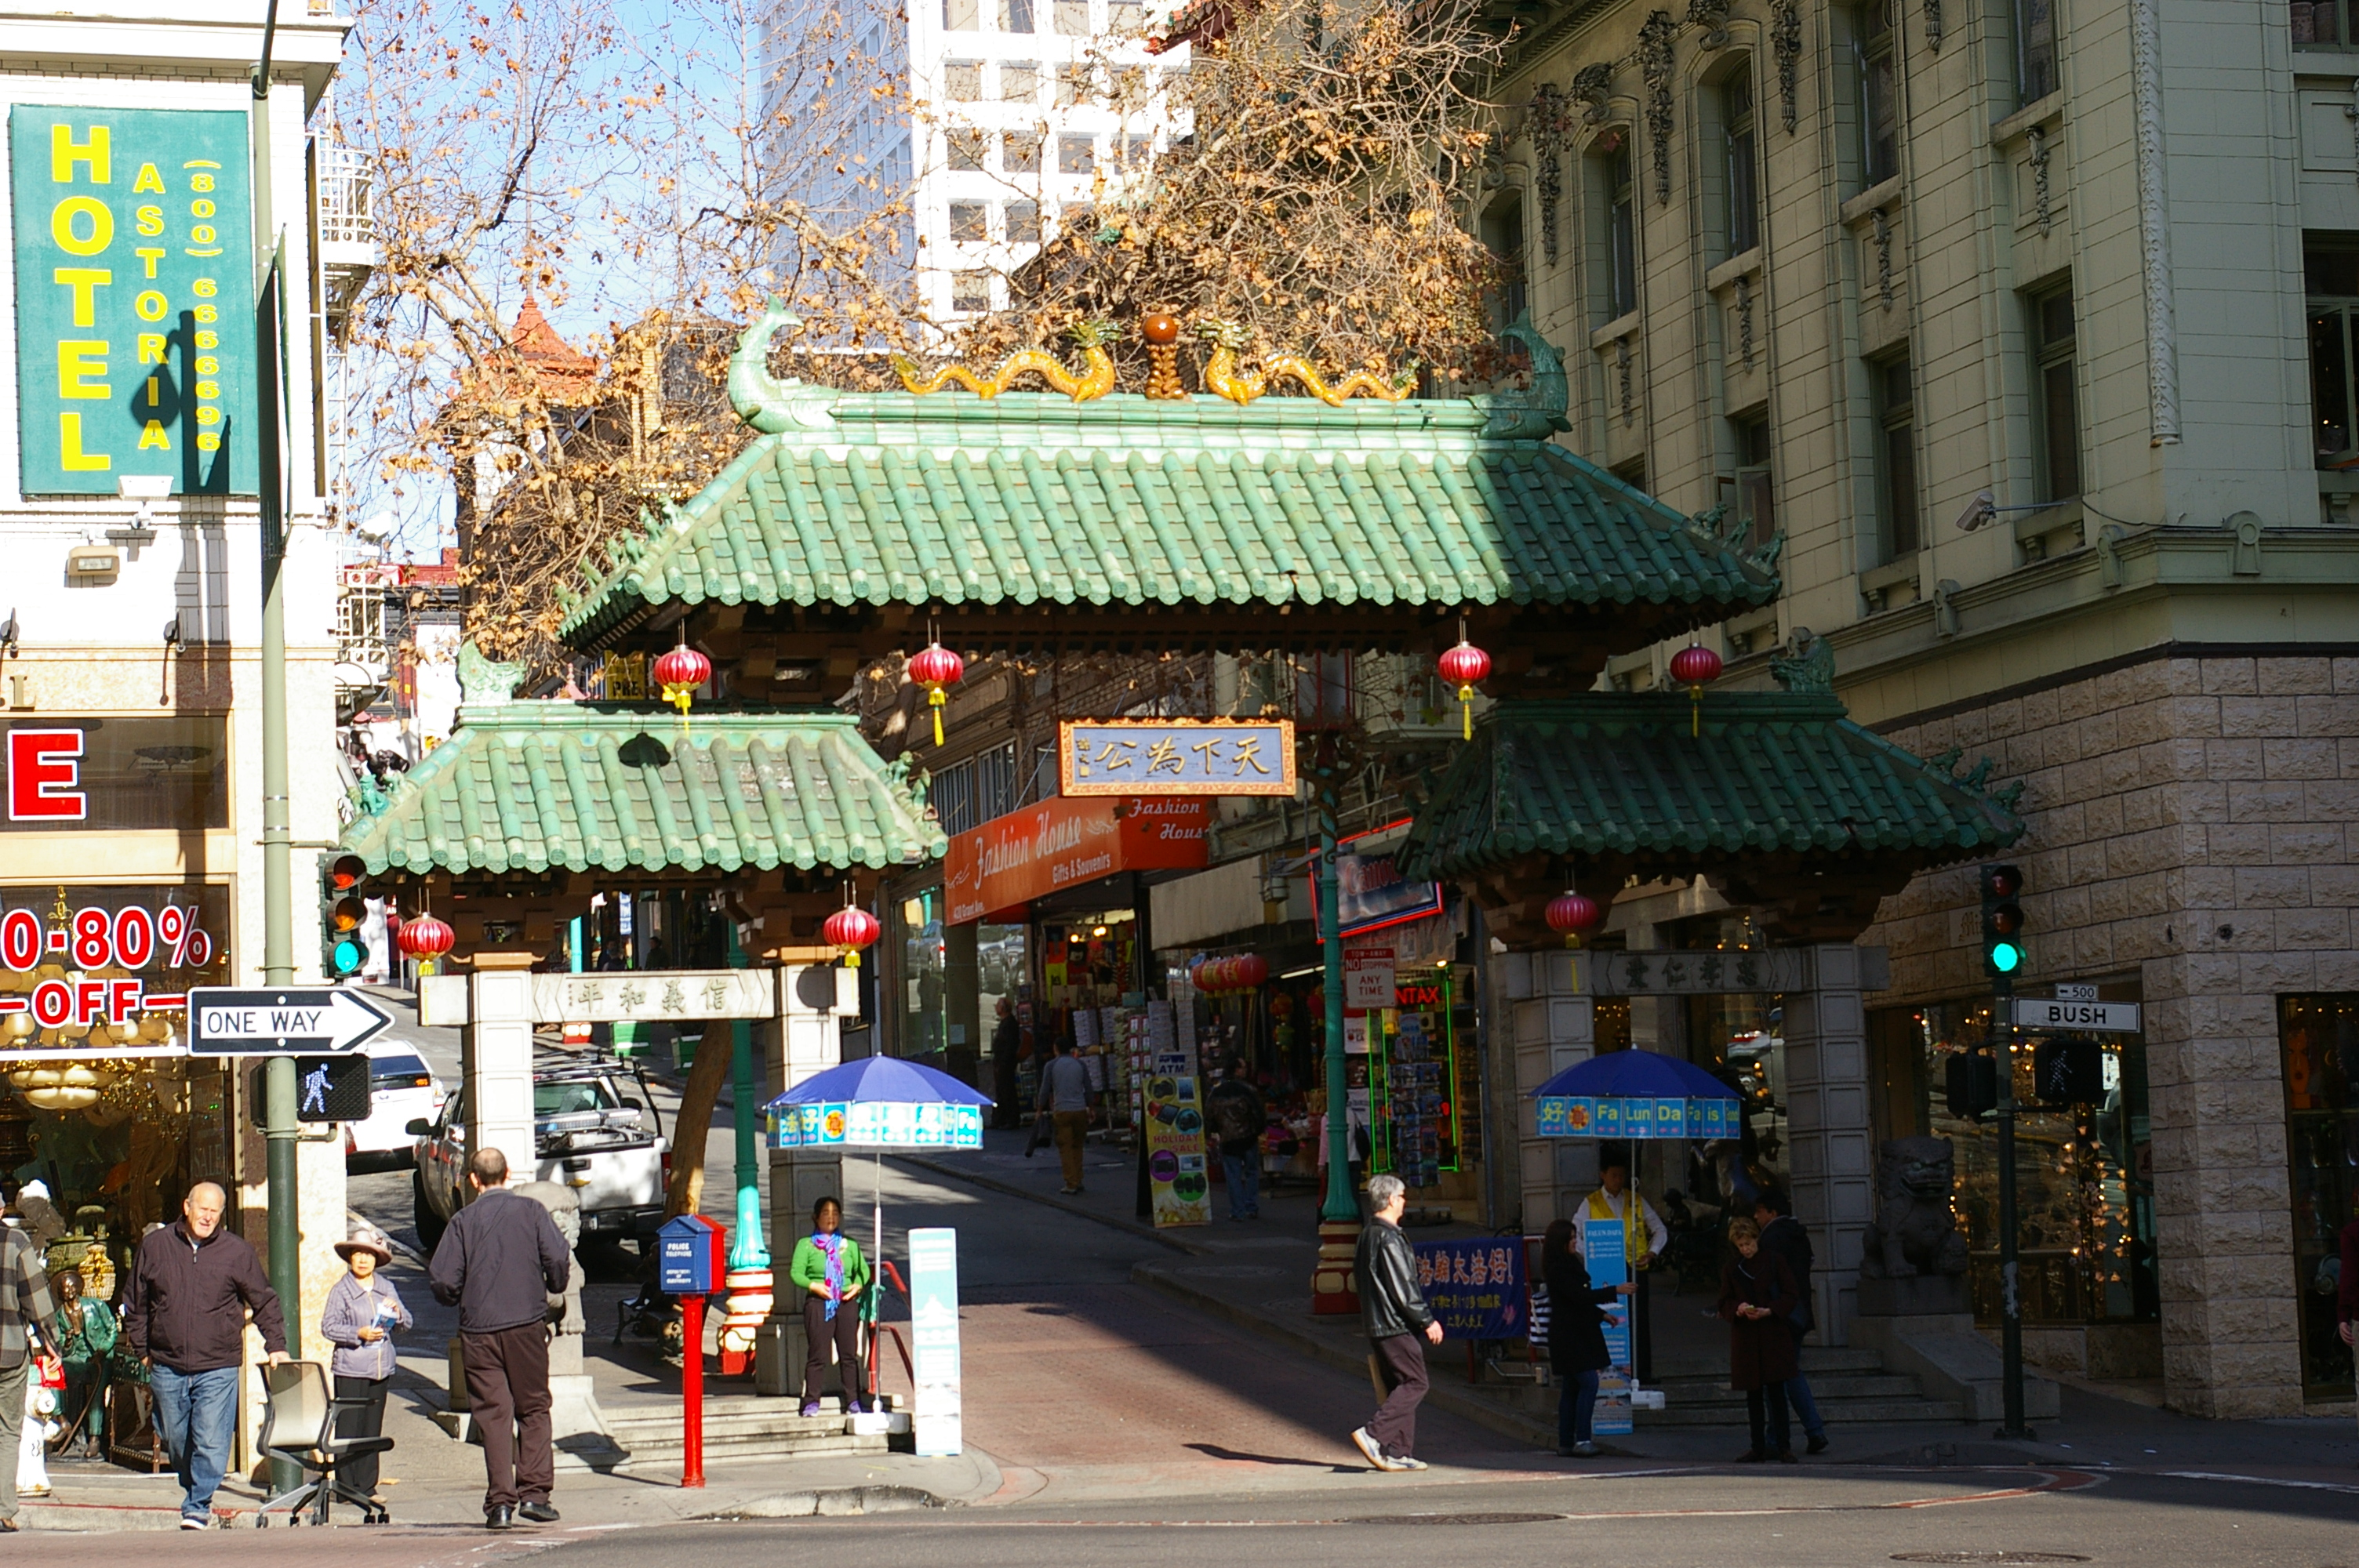 San francisco a romantic destination living the q life for Chinatown mural chicago